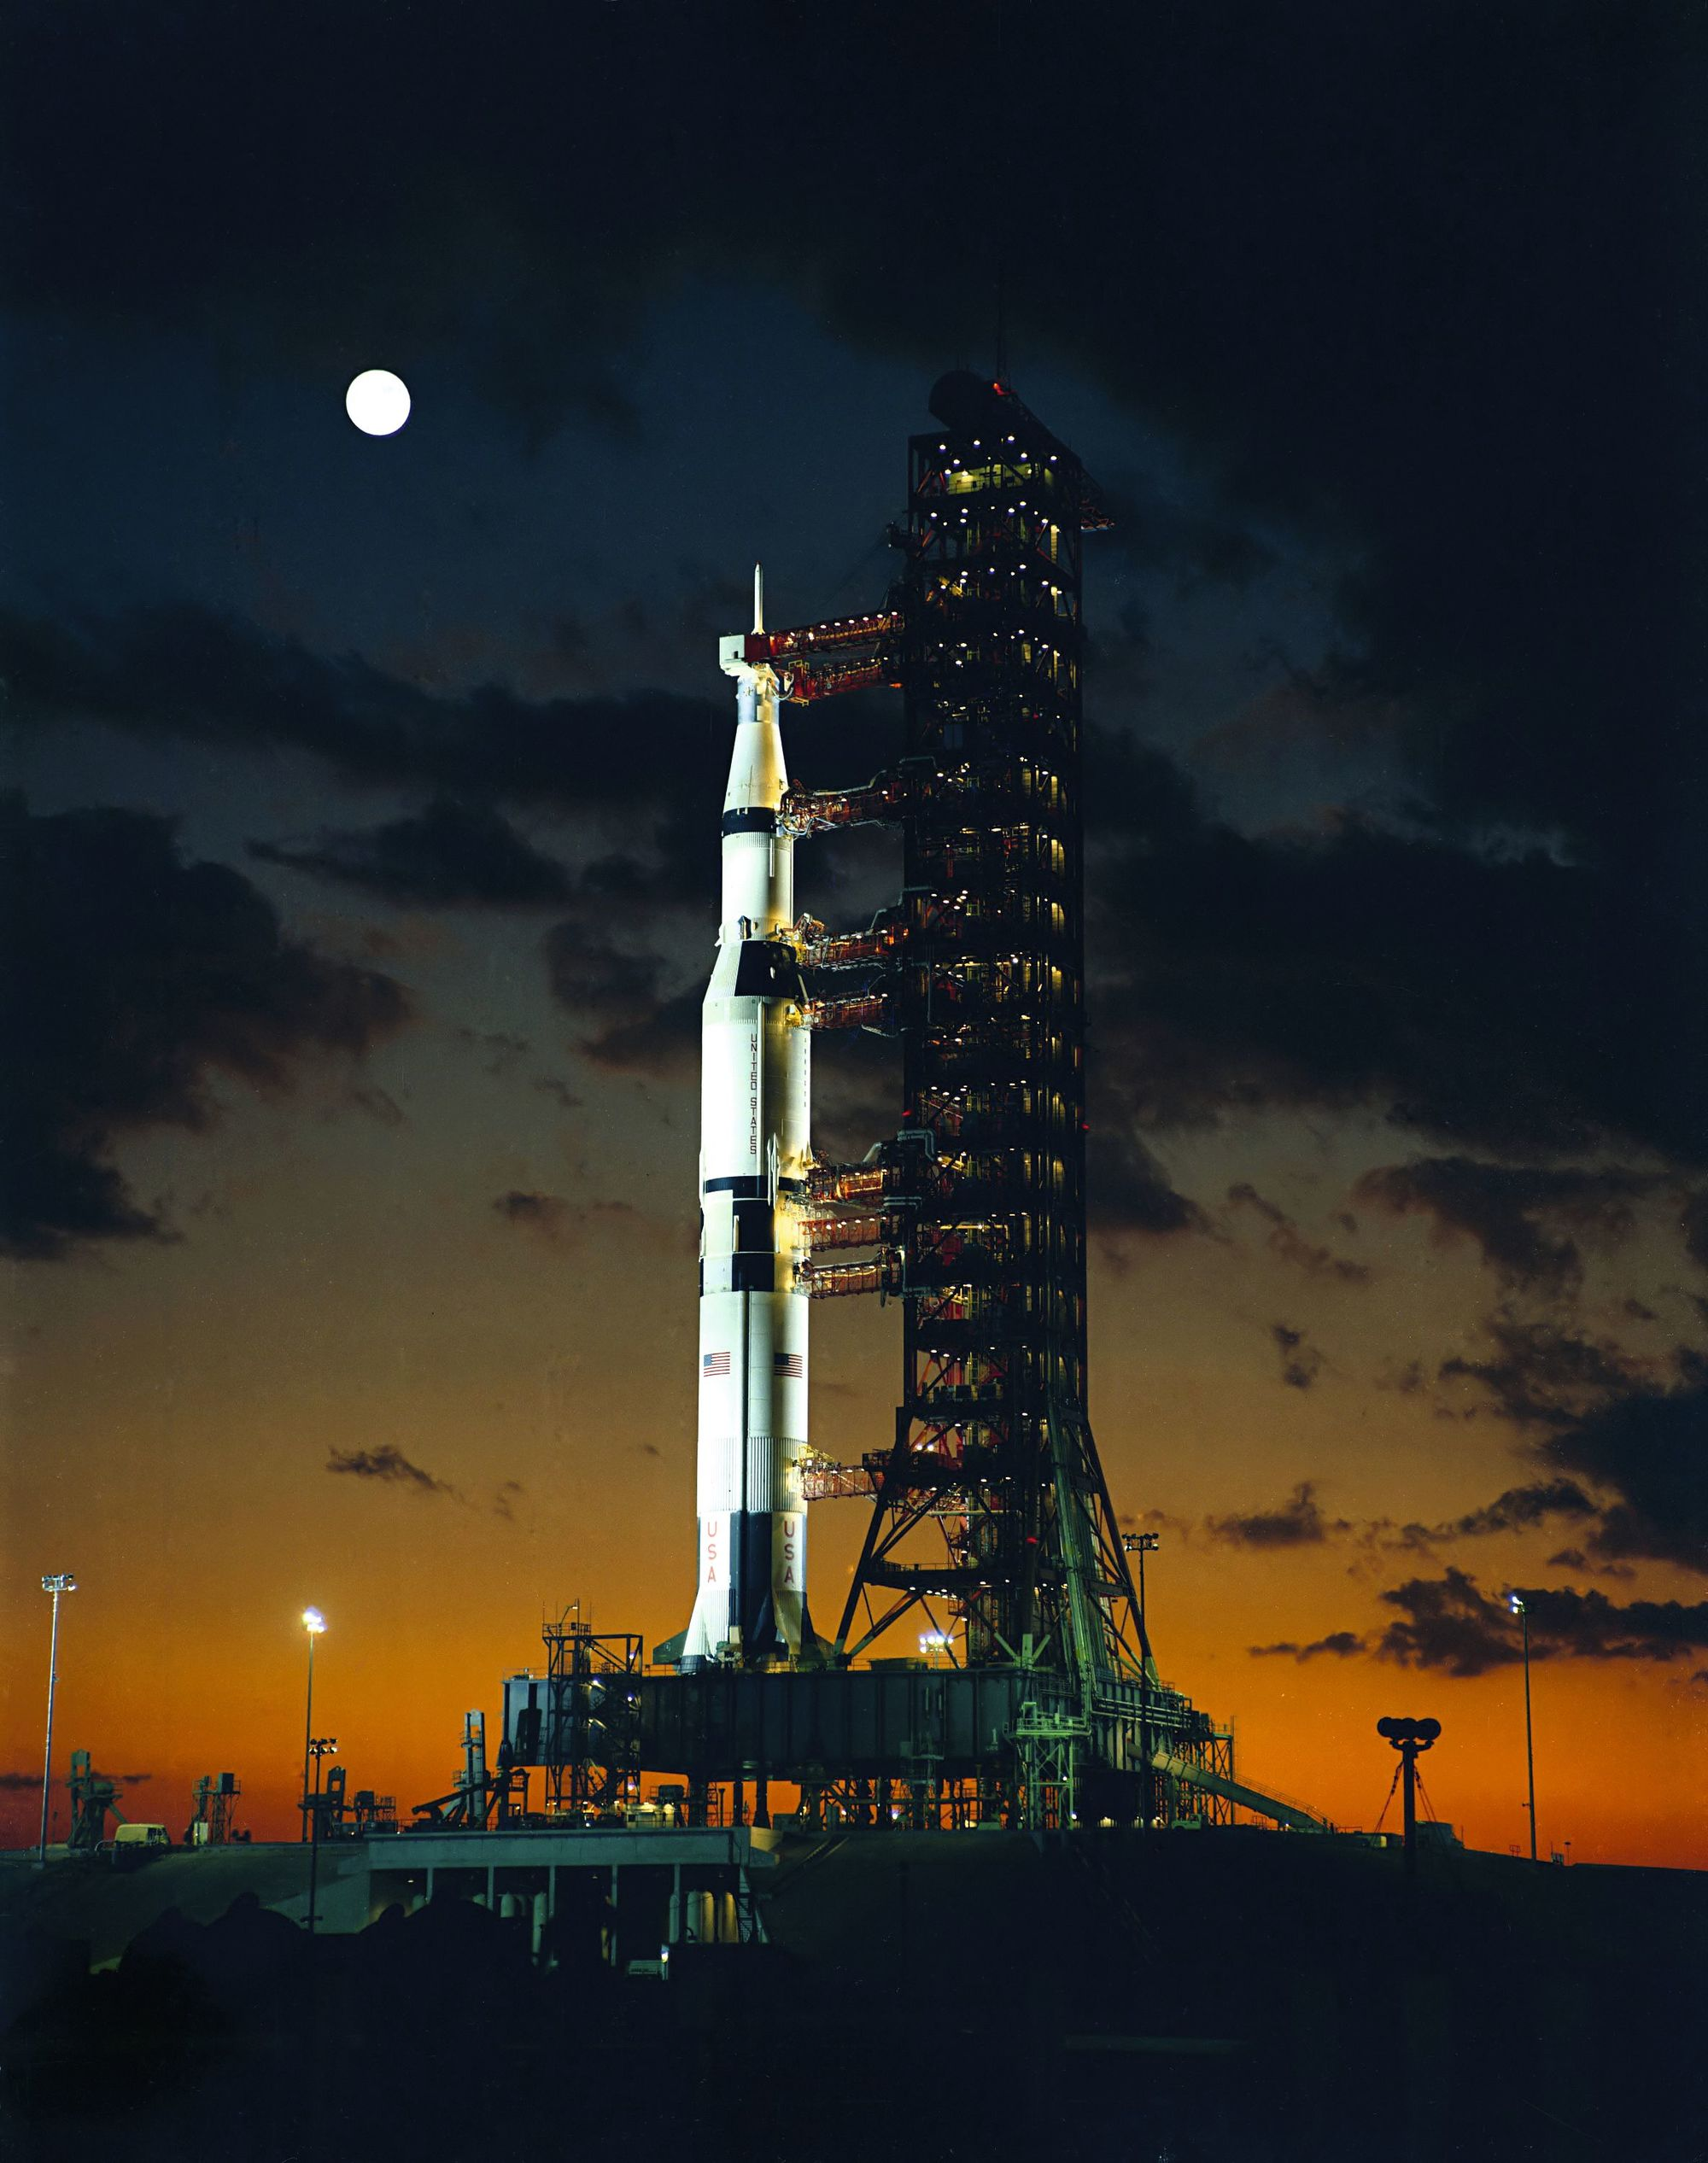 Apollo 4 et le lanceur Saturn V